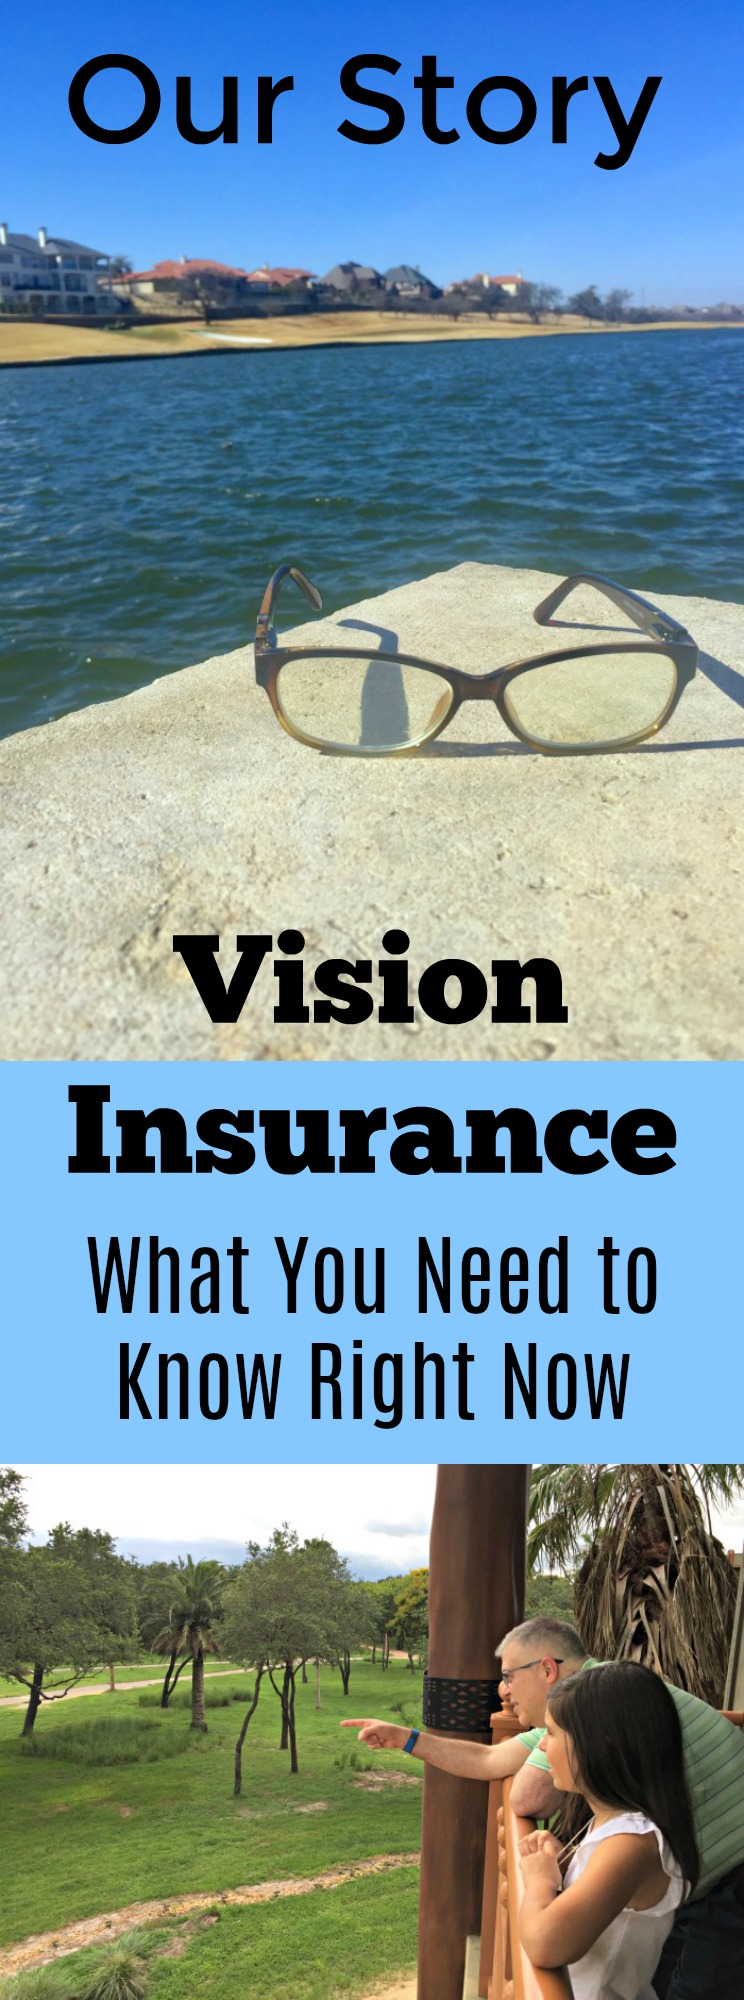 Getting personal with our story and health challenges. While you might have medical insurance, do you have vision insurance? Talking about eye care, vision, and more on the blog. AD